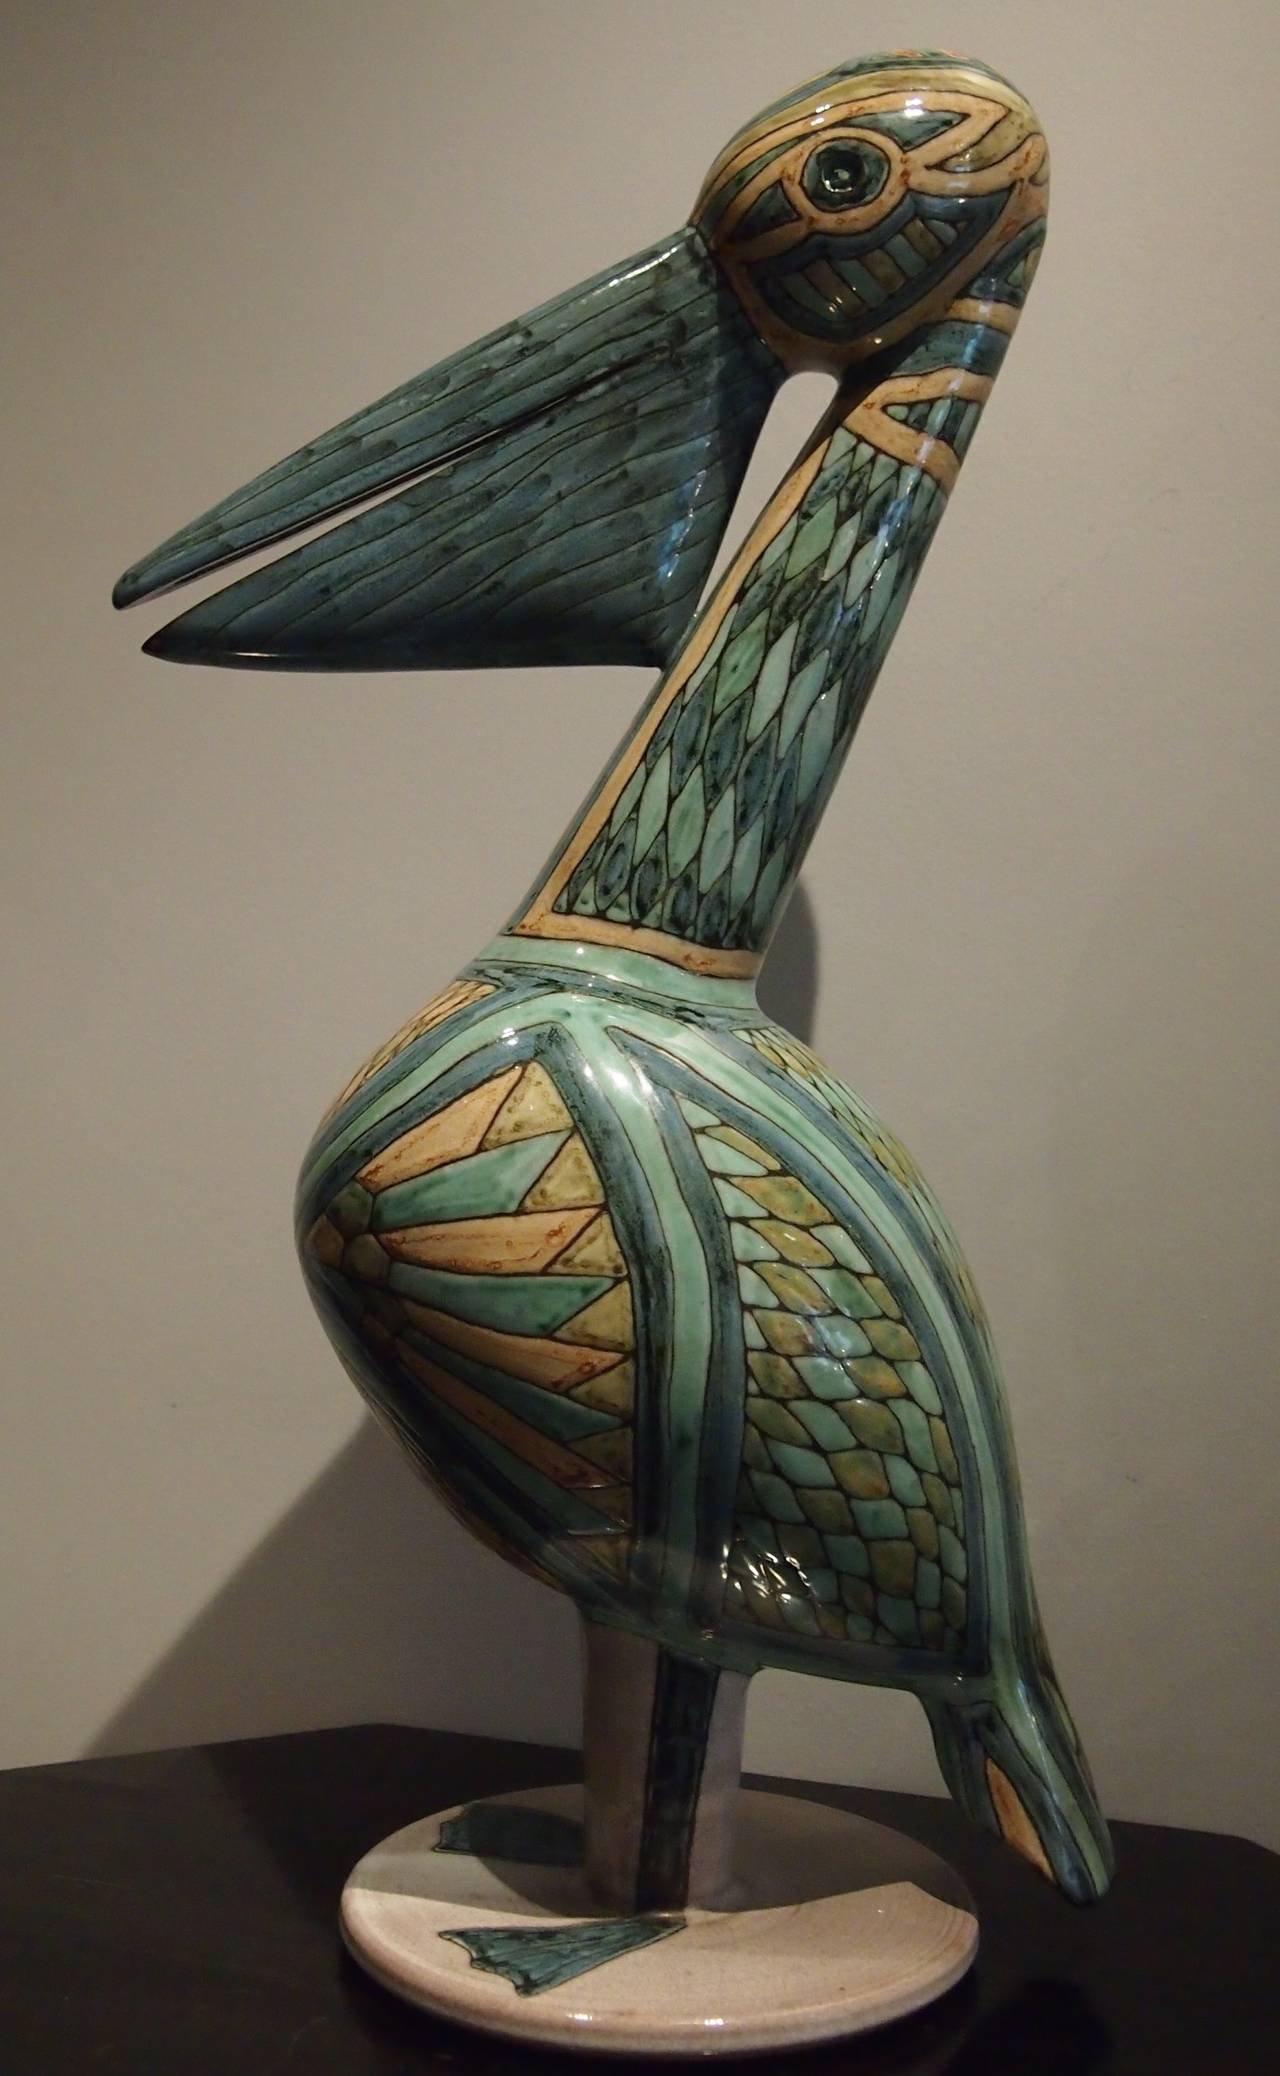 Emile Masson, French ceramist settled in Vallauris in 1950 and stayed during 15 and, then he leaved to go Bourg Saint-Maurice in Savoie and continue there in his ceramic workshop.